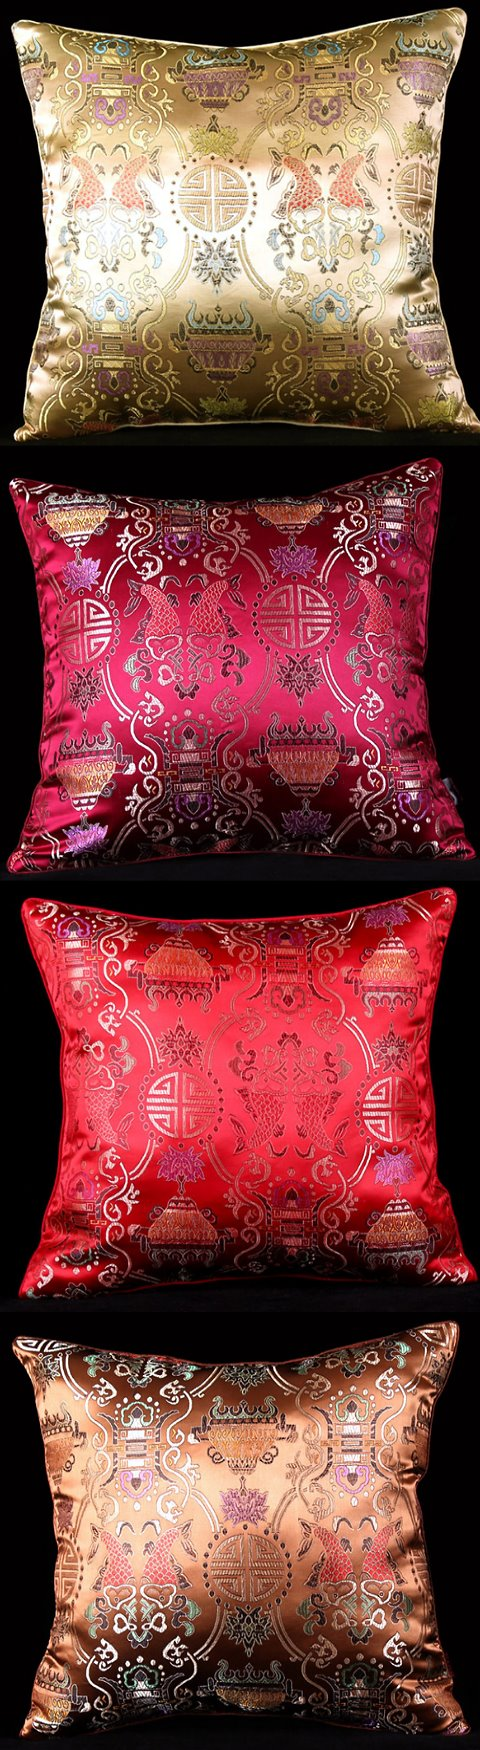 Chinese Ethnic Lotus Embroidery Cushion Cover